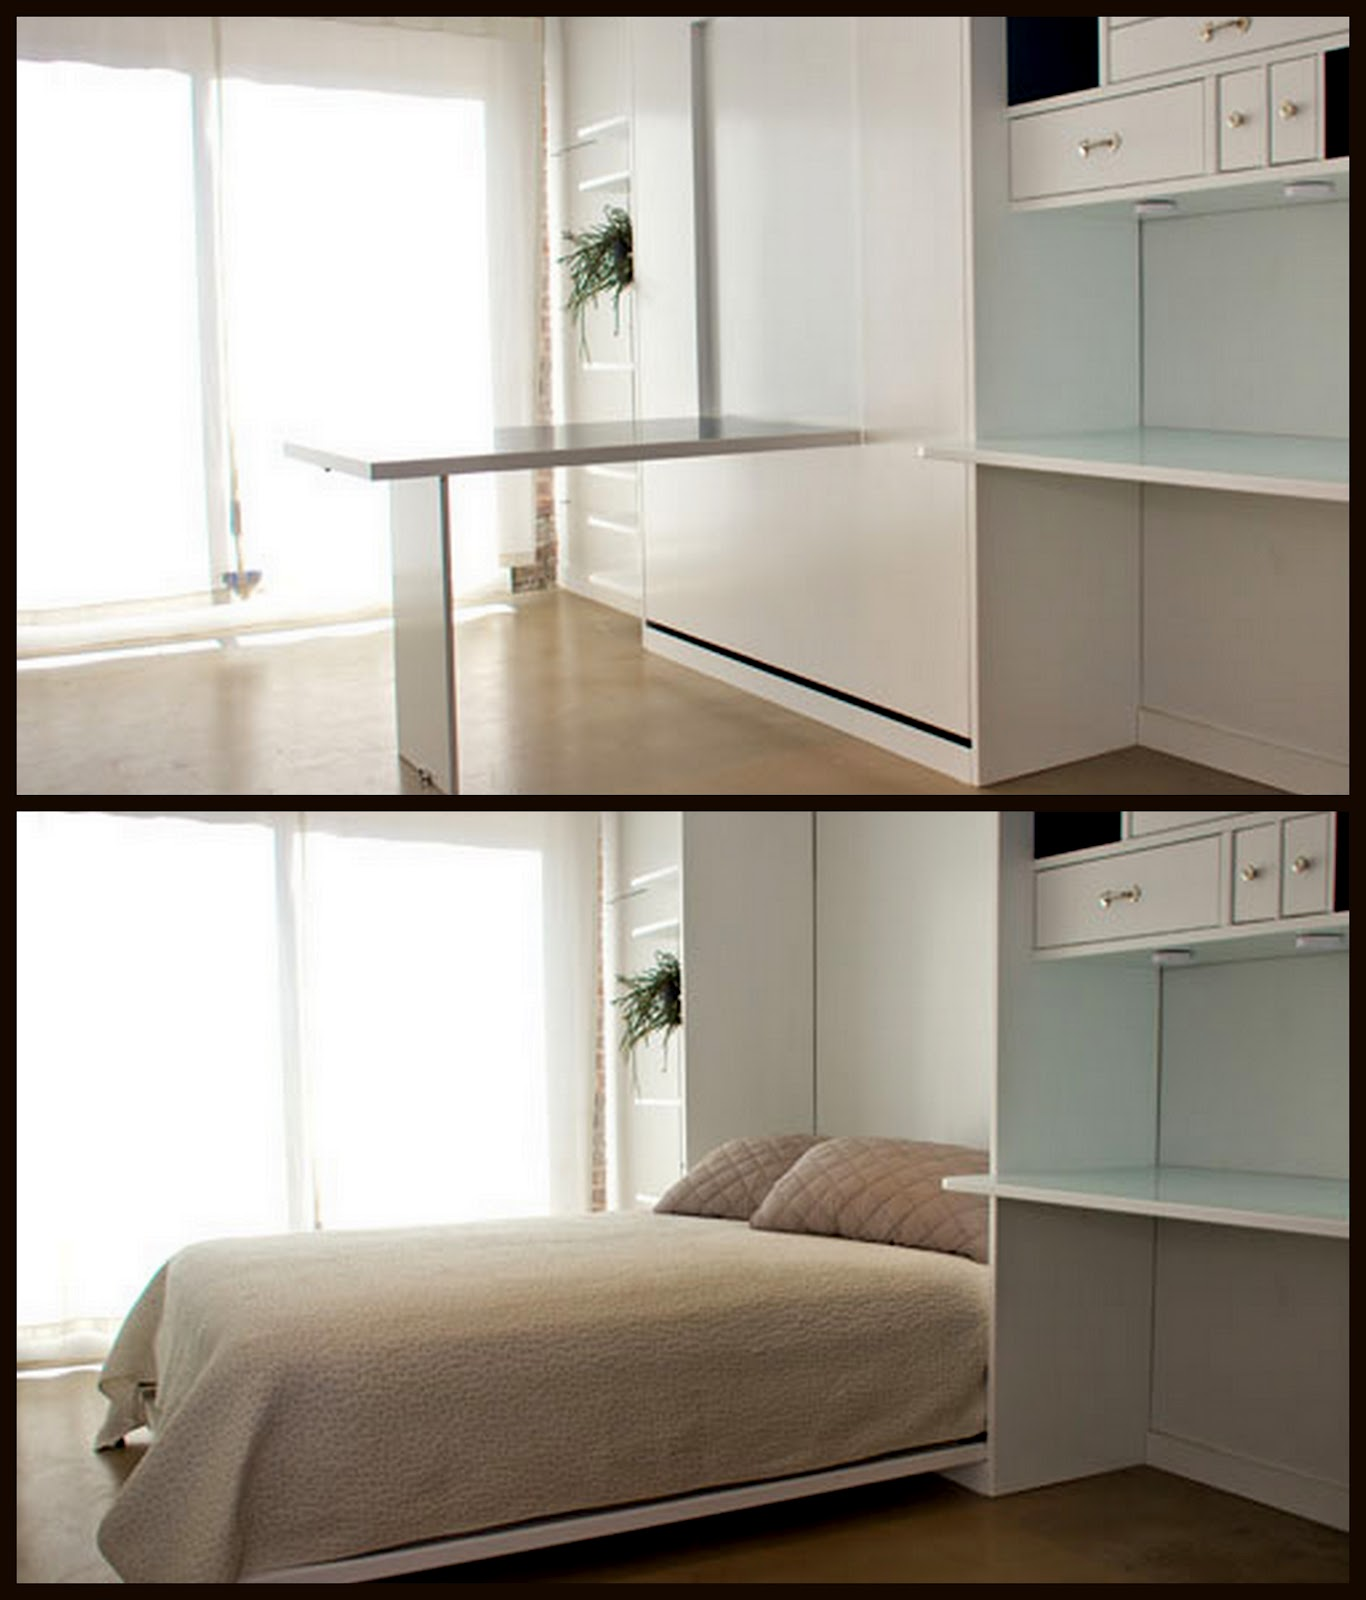 Murphy Bed Desk Can You Believe This? As It Is It Looks Like Some